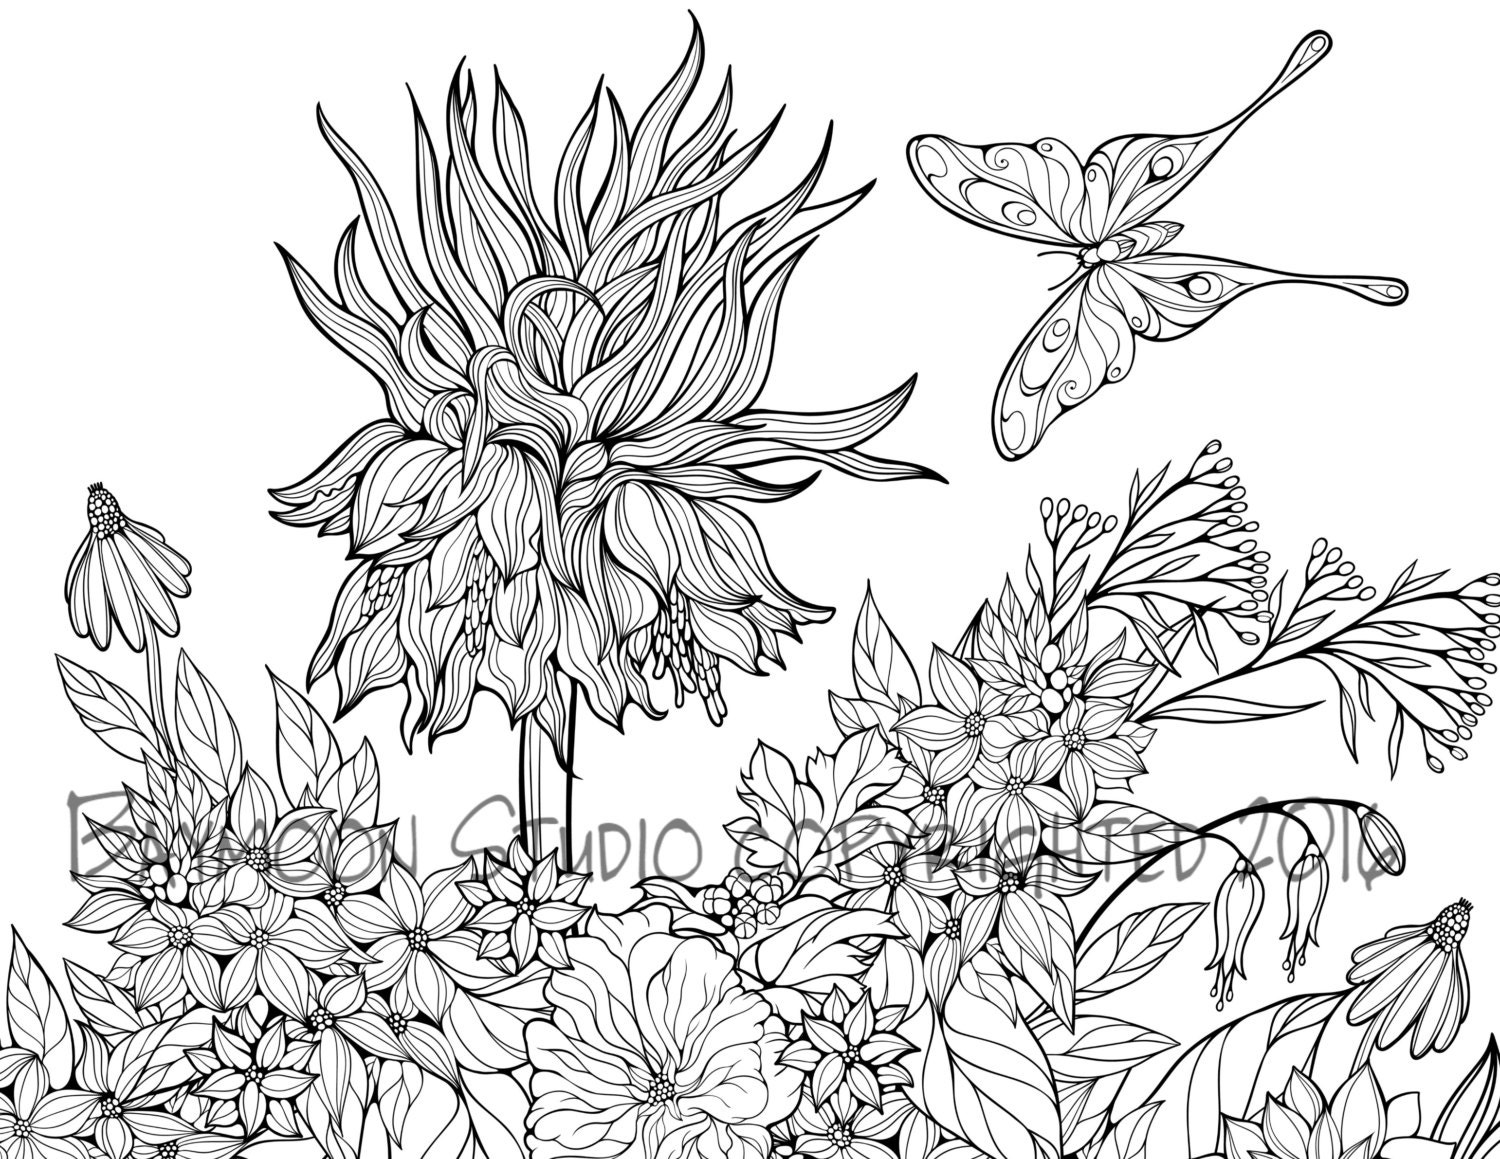 butterfly garden kit coloring pages - photo#13